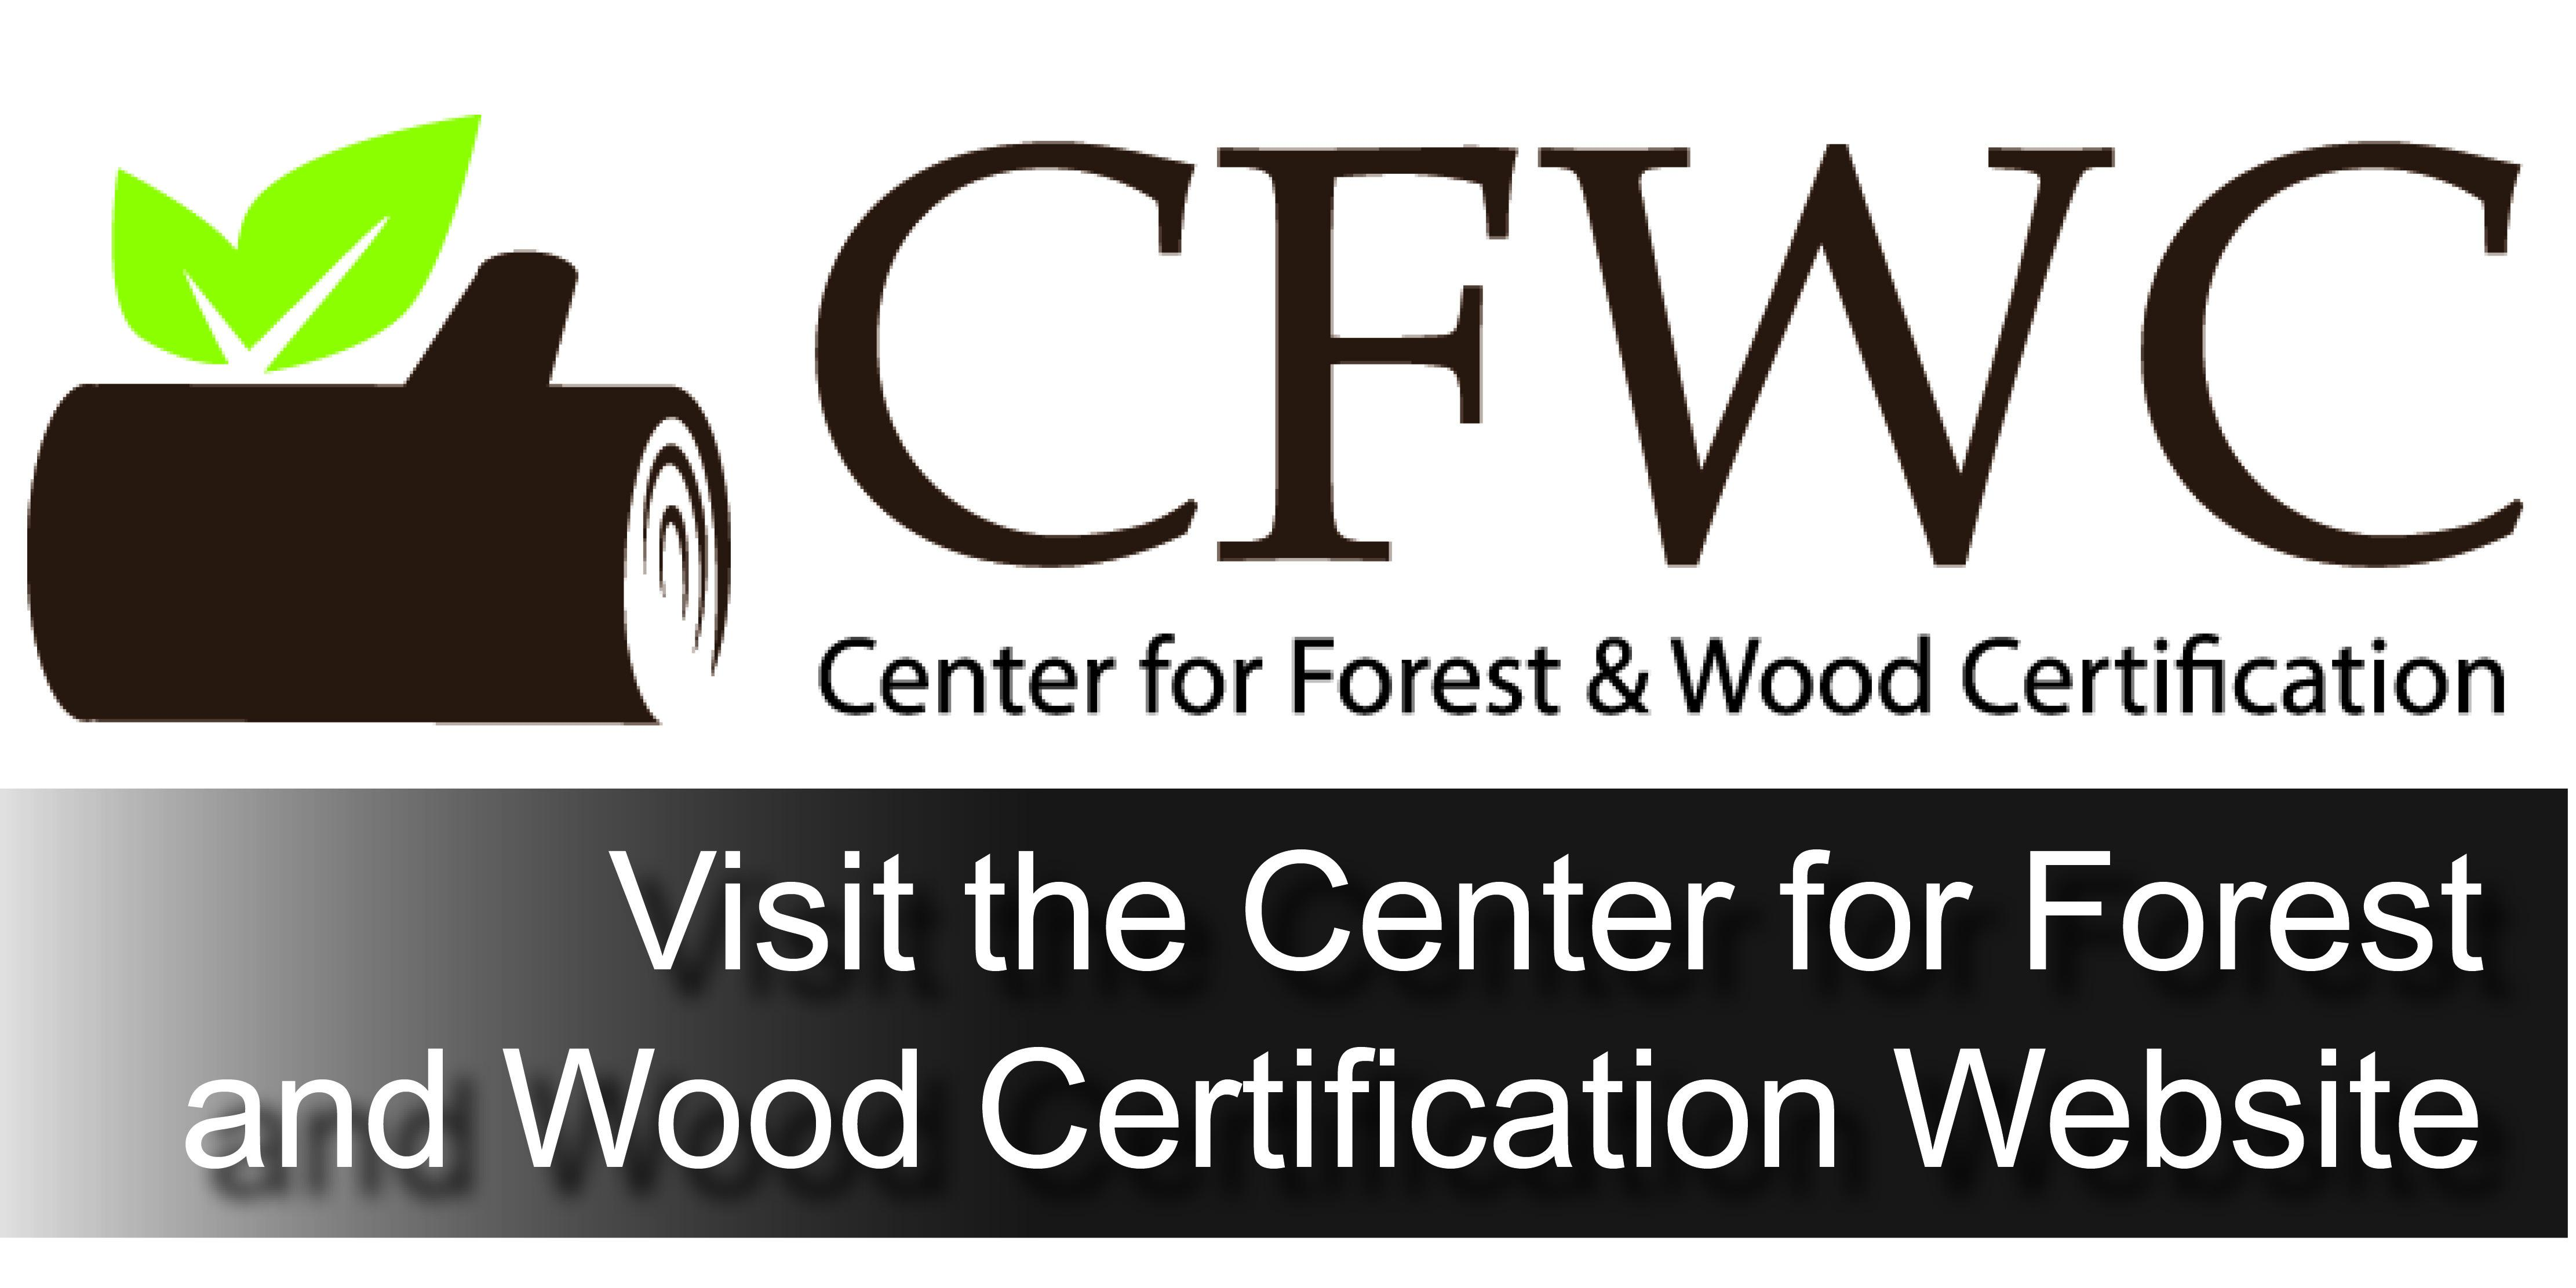 Center for Forest and Wood Certification